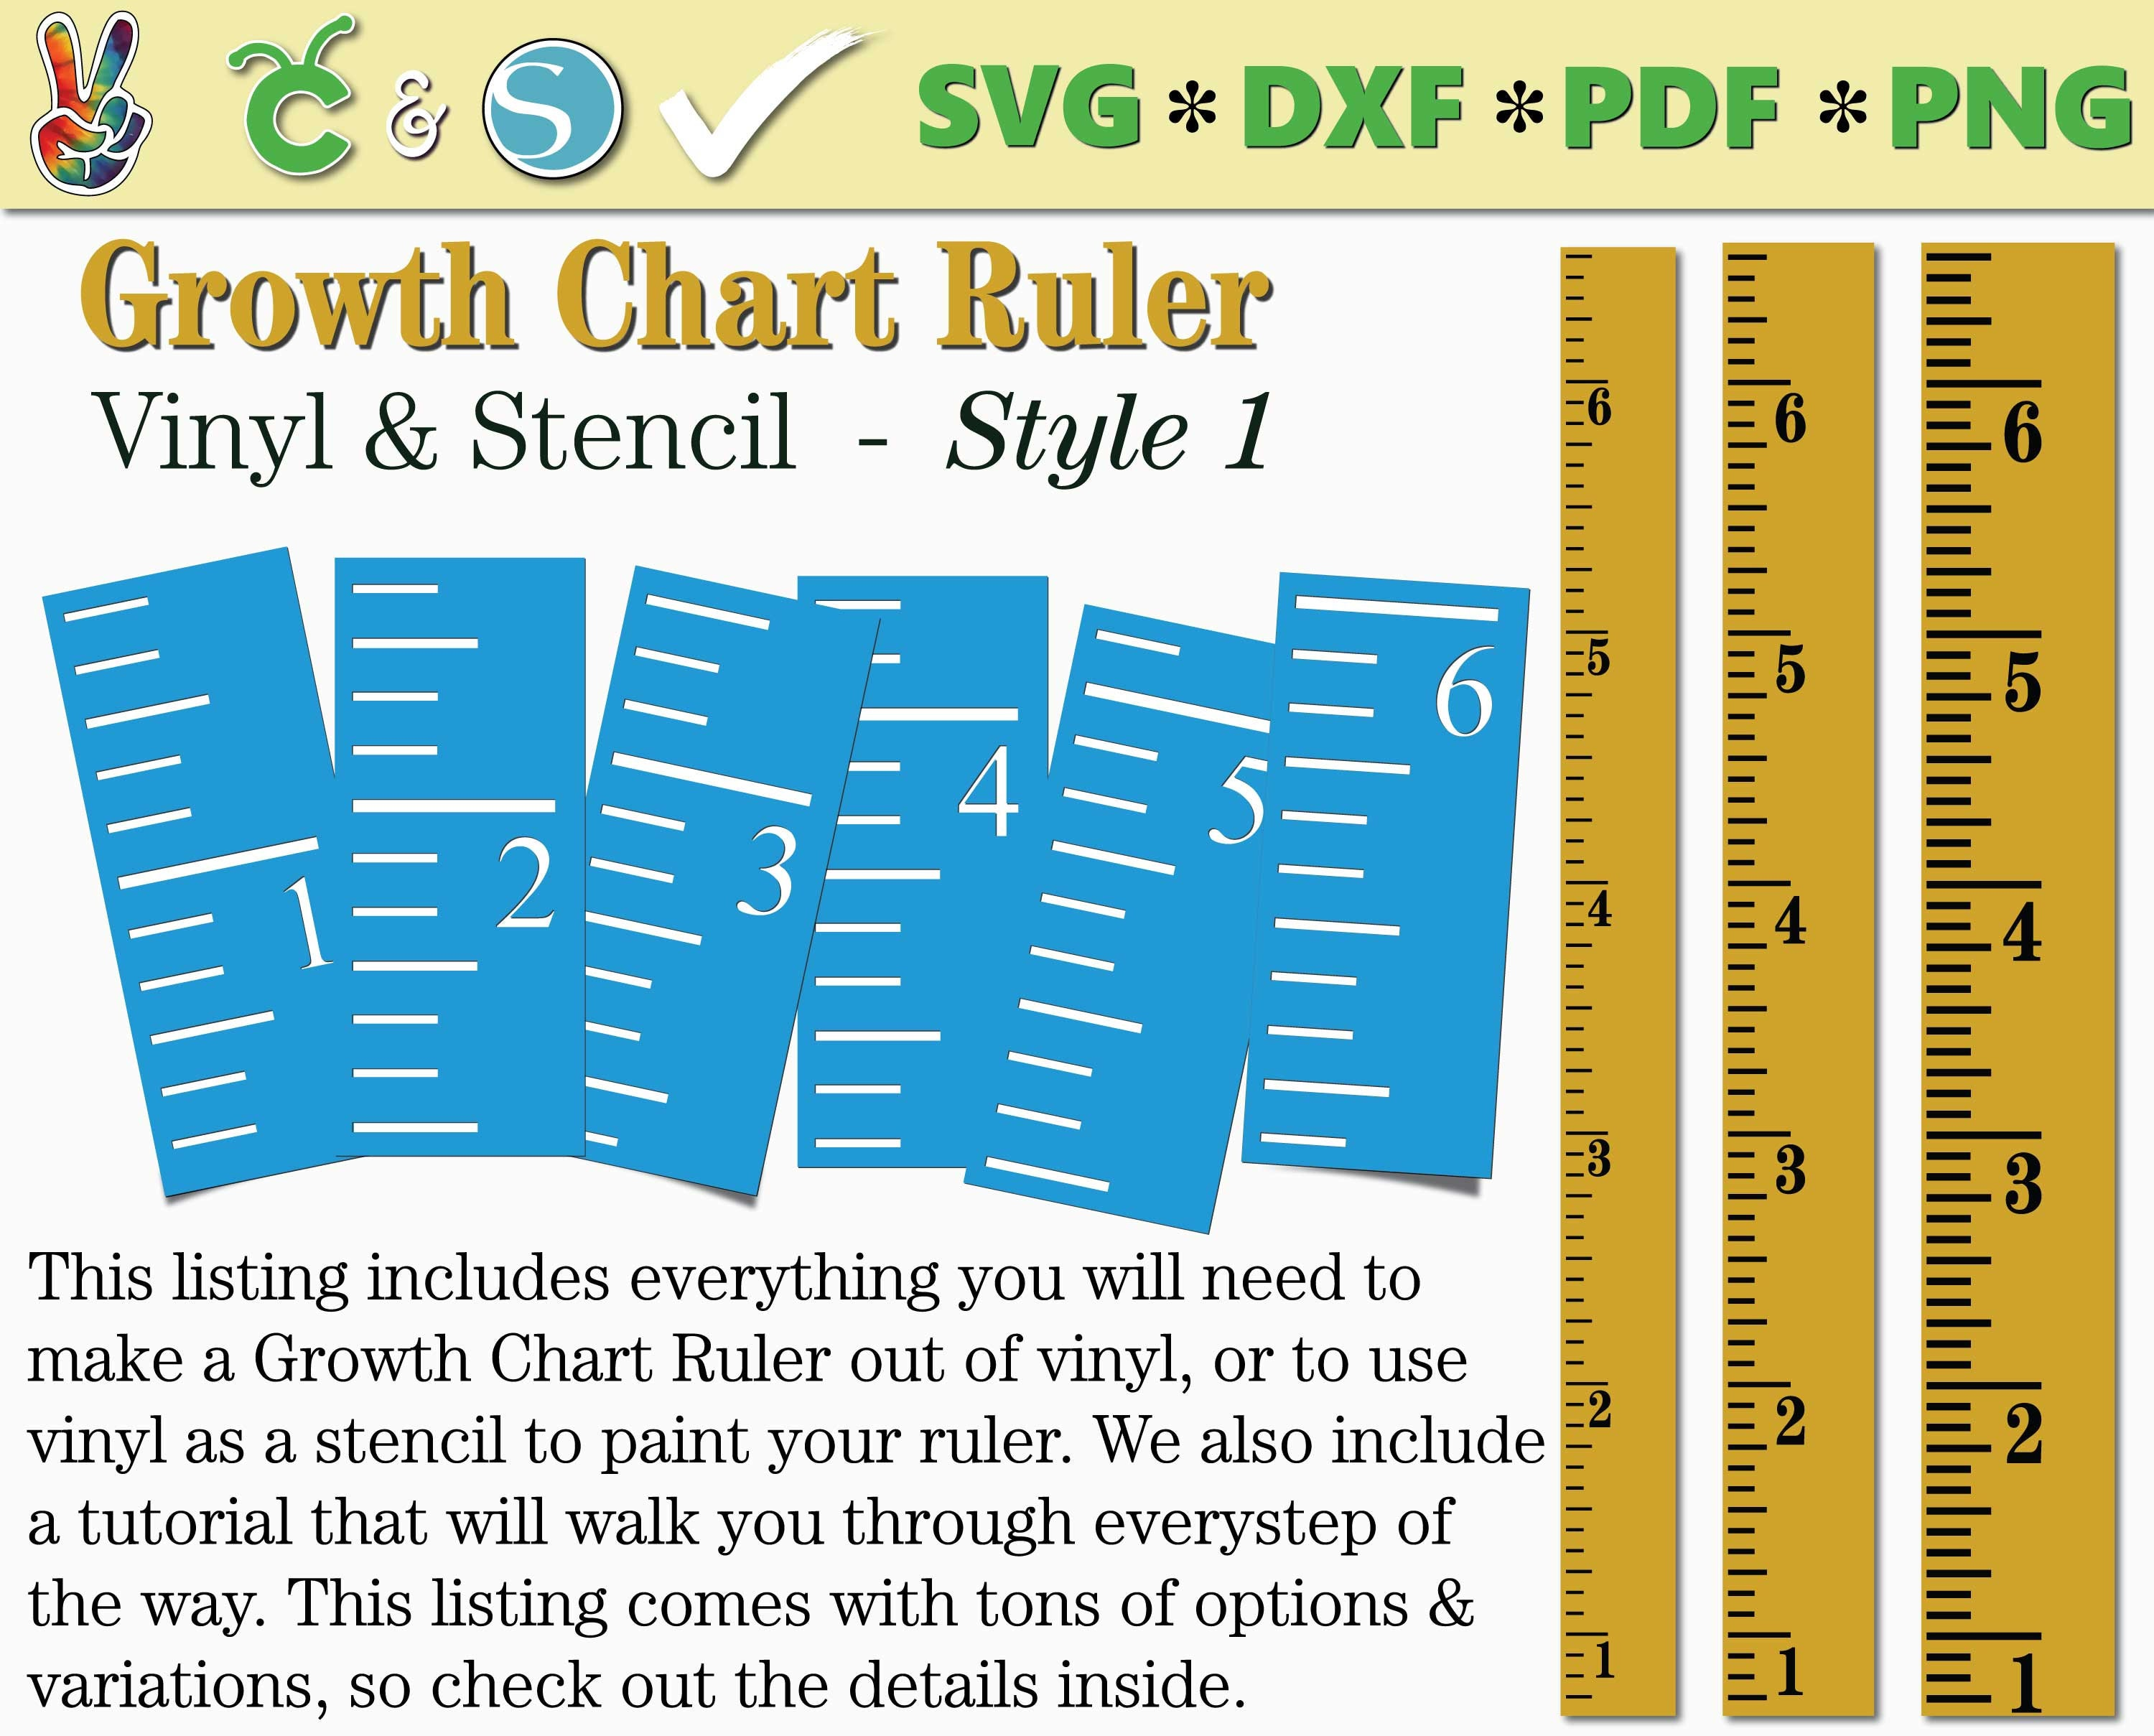 Growth Chart Ruler Stencil File Growth Chart Ruler Vinyl